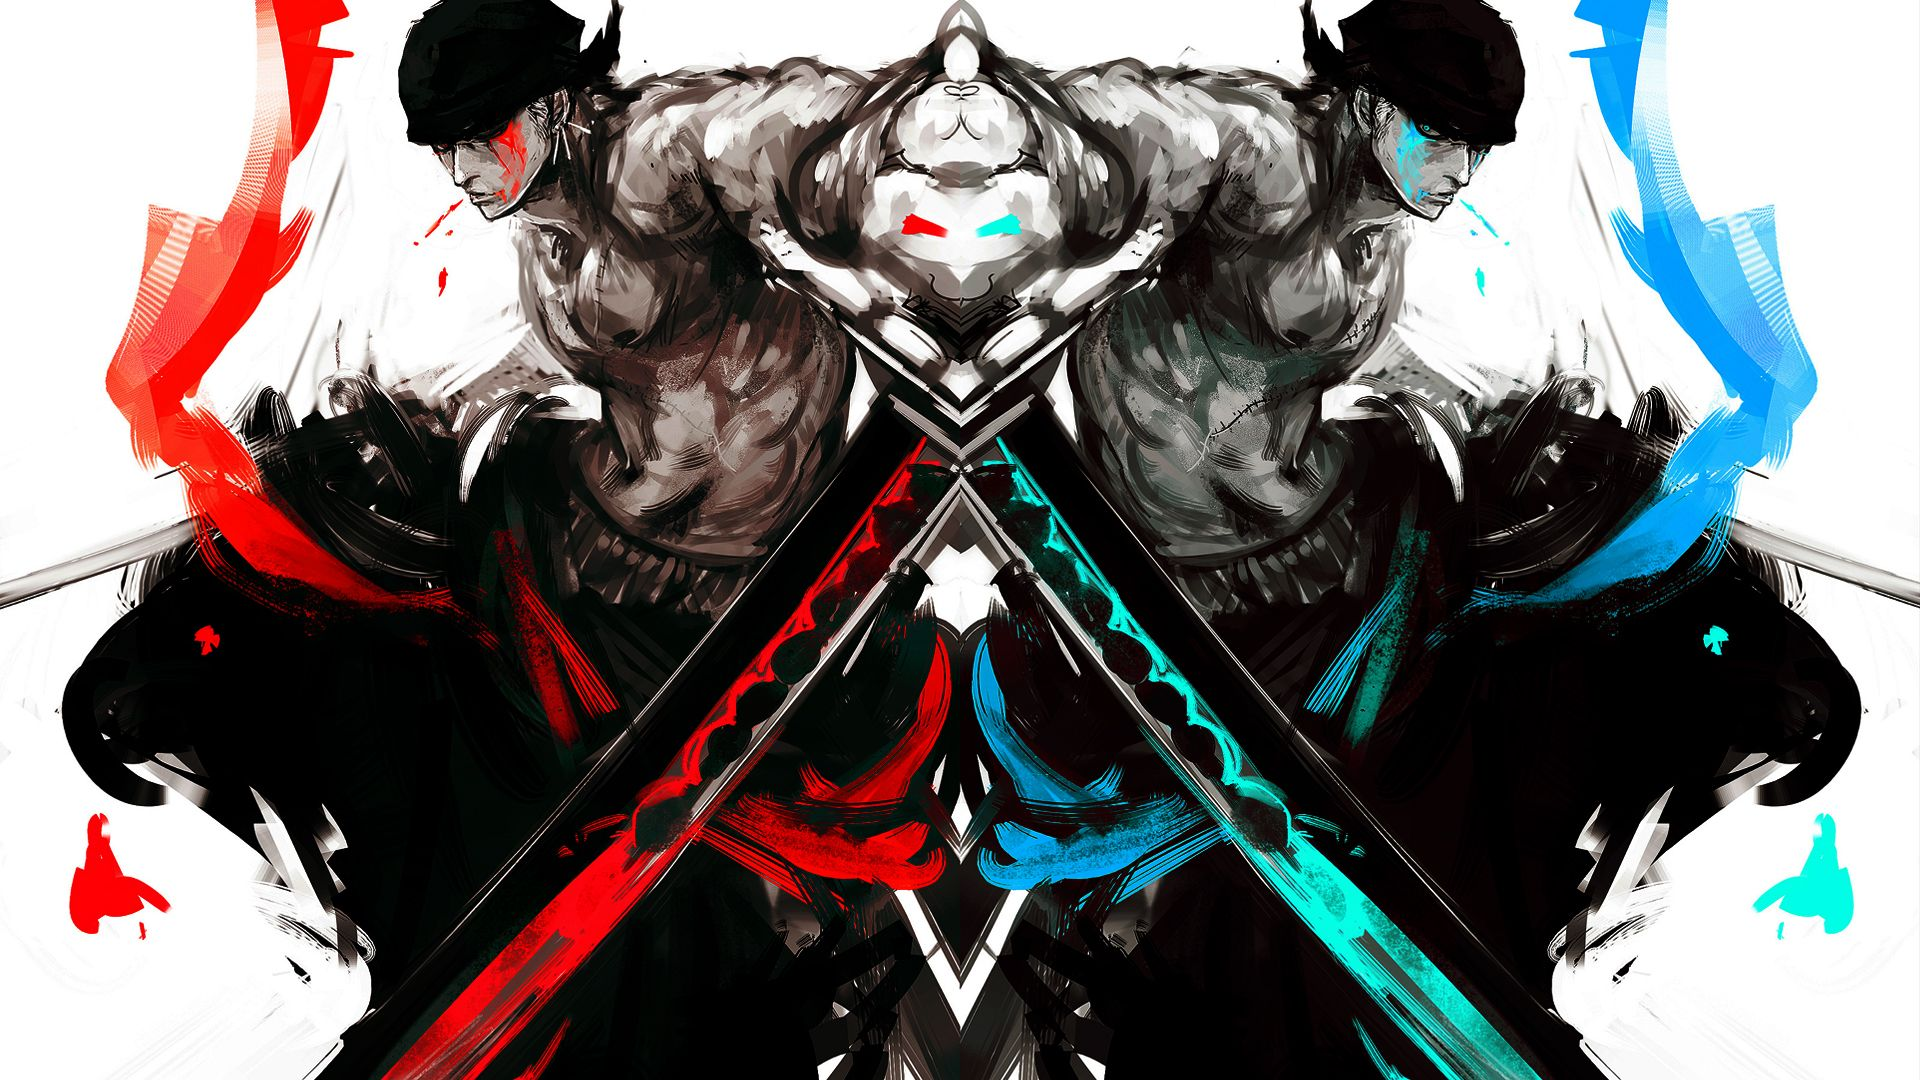 One Piece Anime Wallpaper 1920x1080 Hd Anime Wallpapers Cool Anime Wallpapers